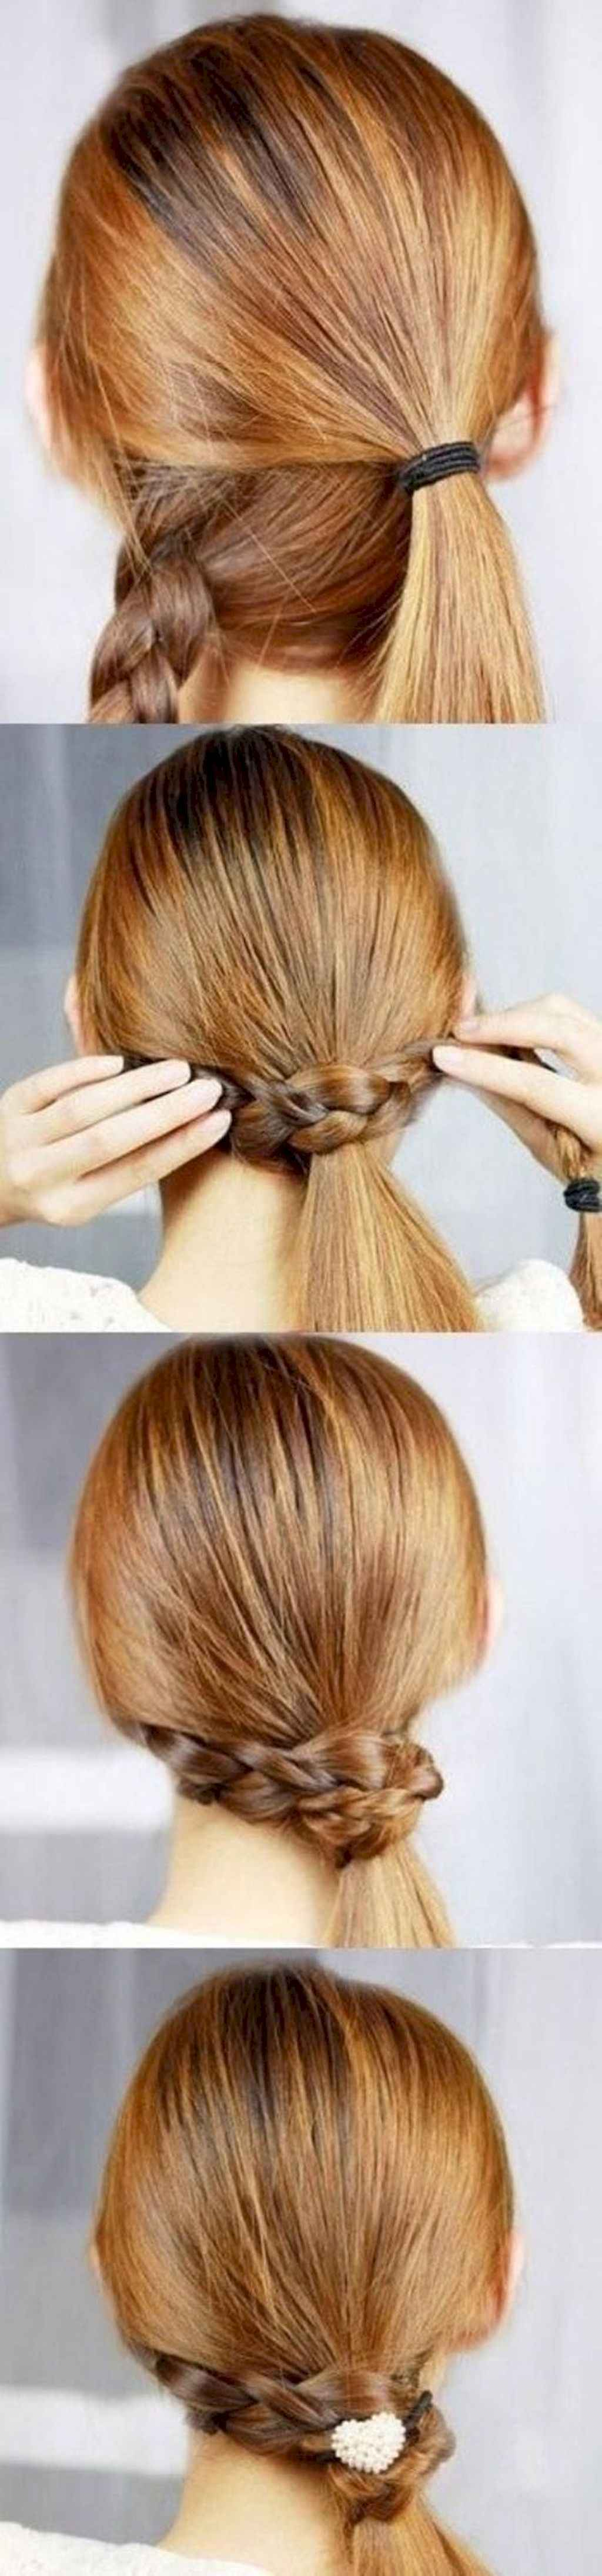 23 Easy Summer Hairstyle To Do Yourself